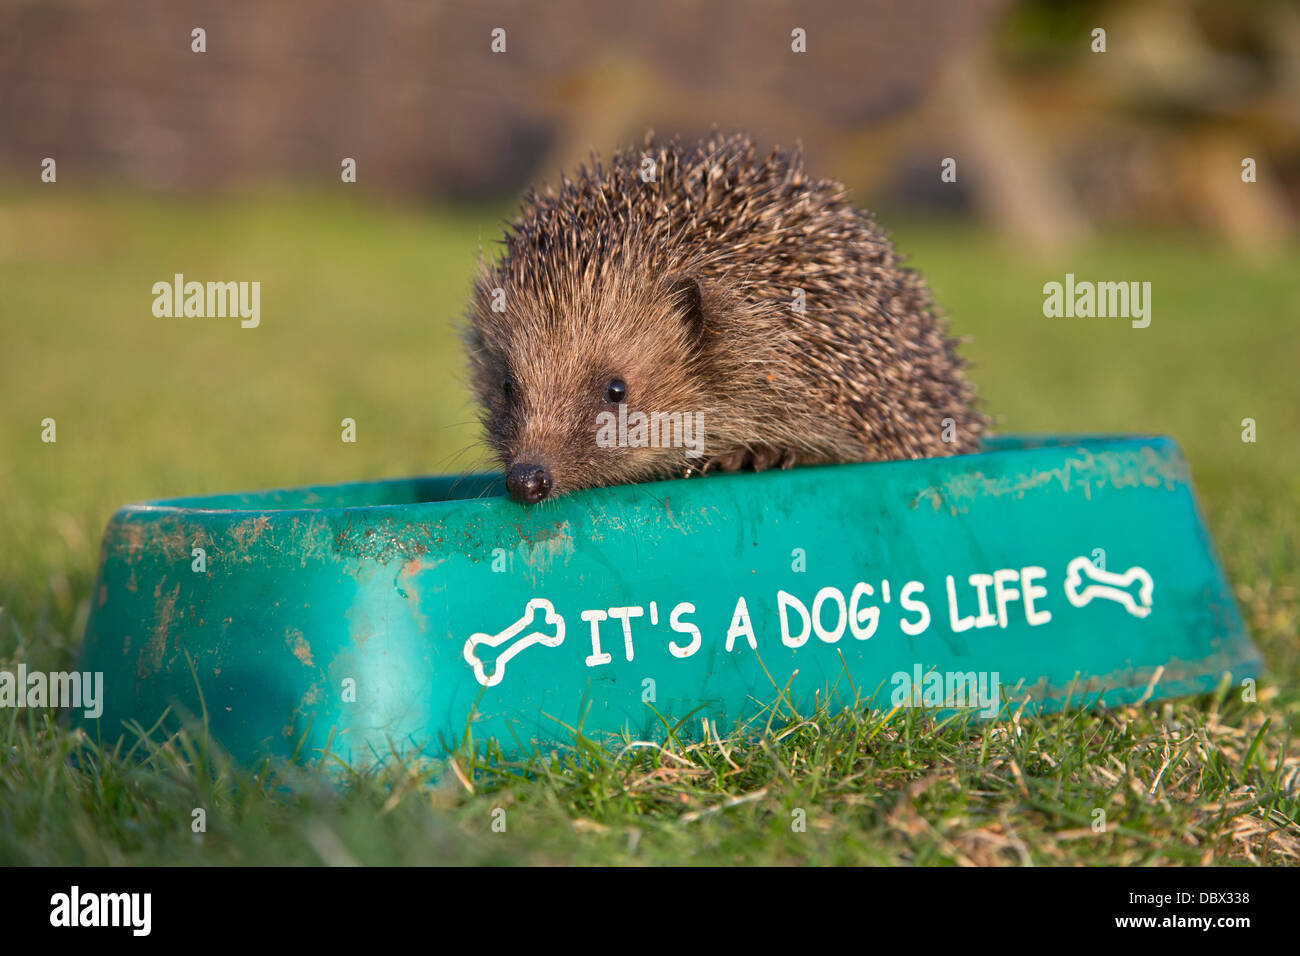 Hedgehog (Erinaceus europaeus), feeding in dog bowl, captive, UK, July 2012 - Stock Image